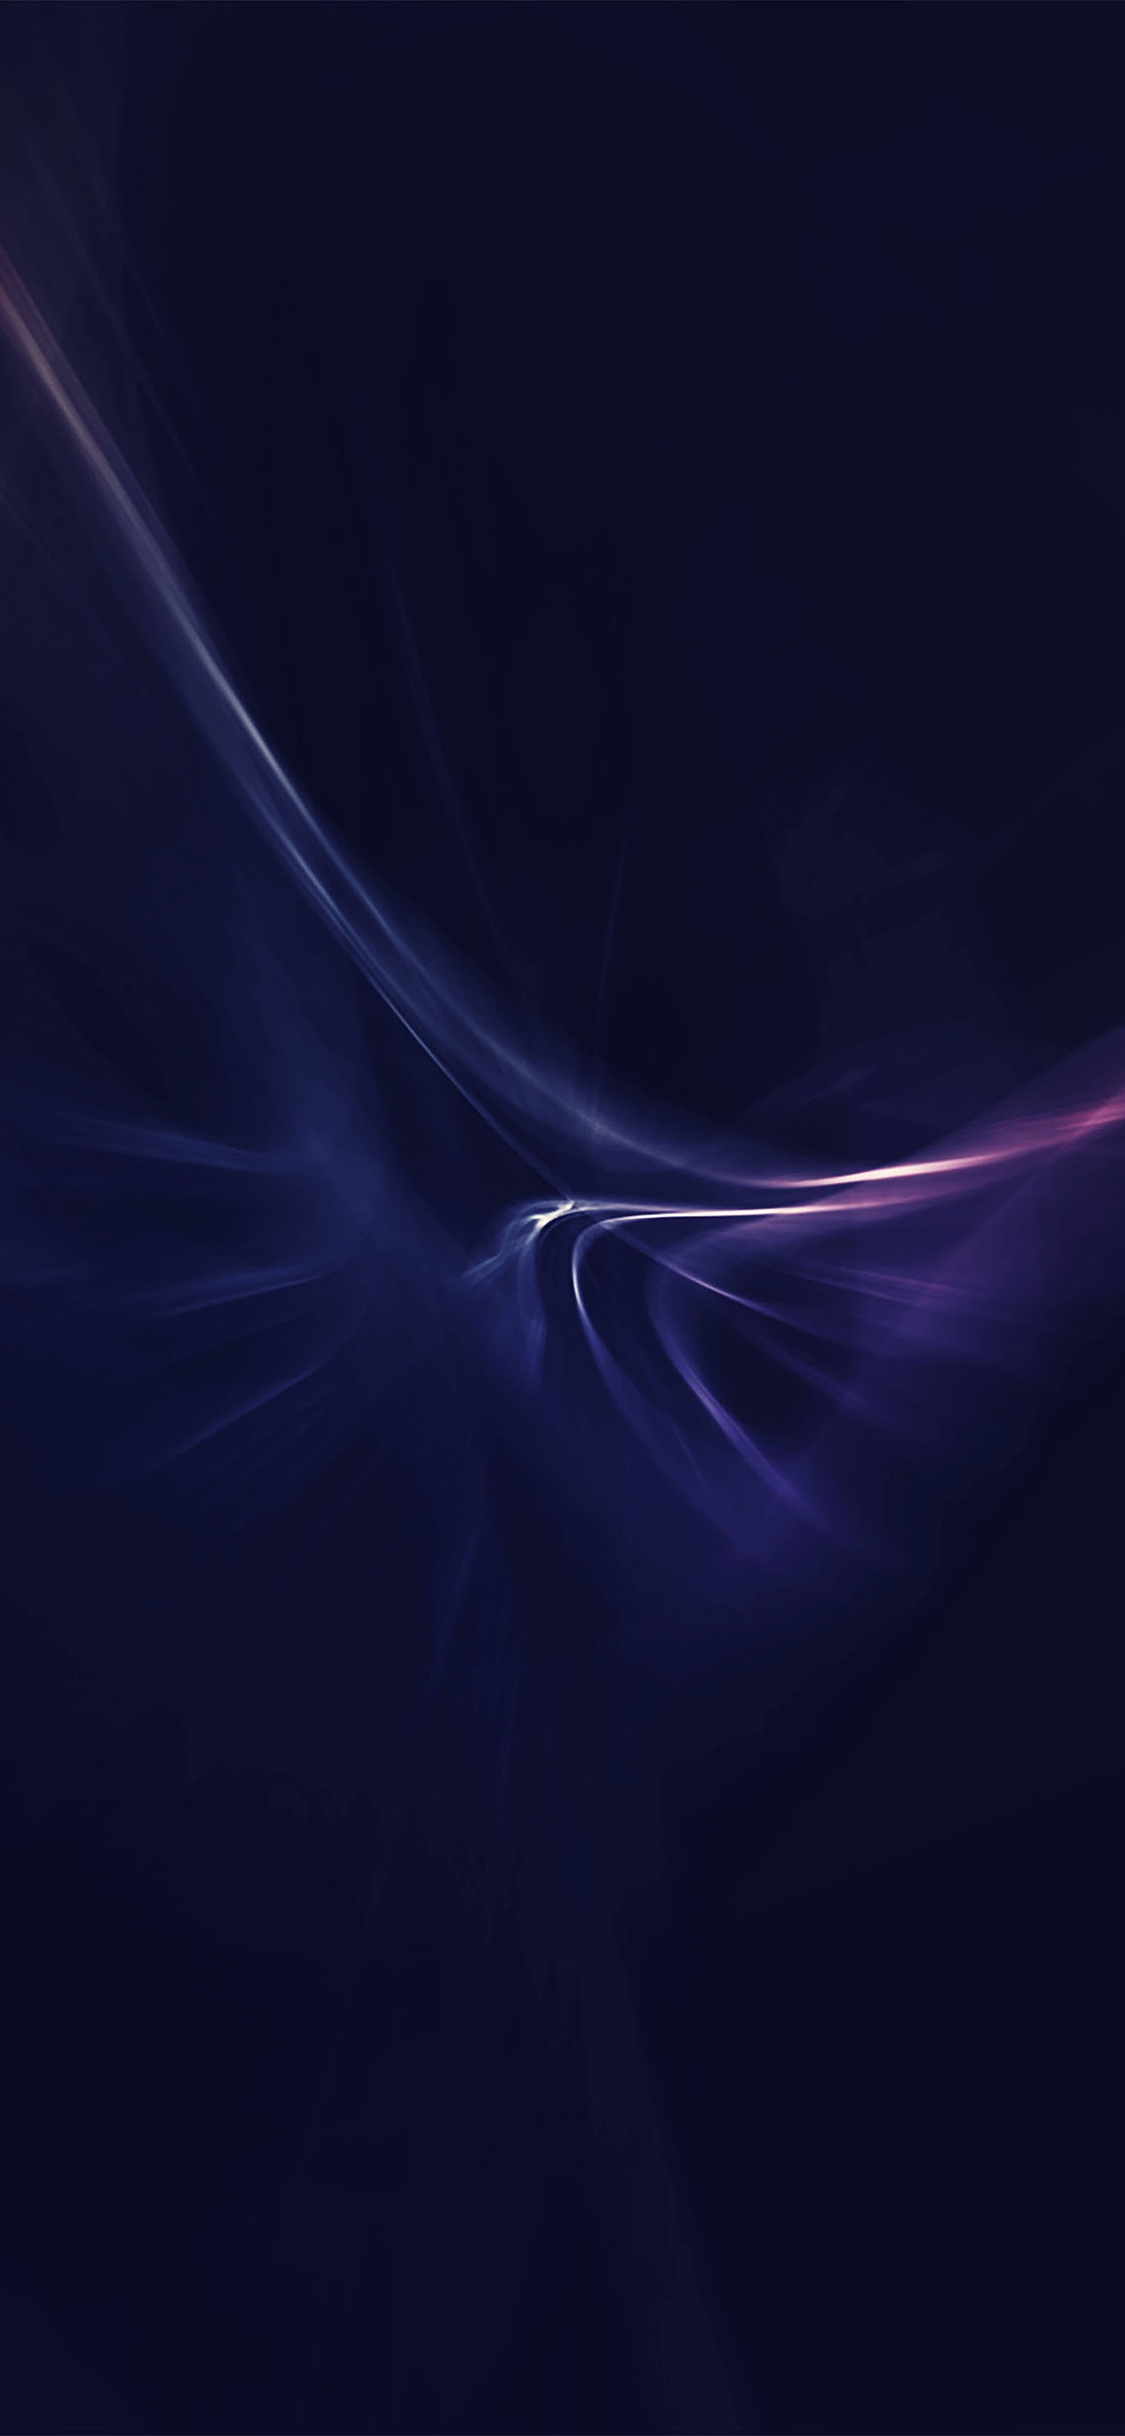 iPhoneXpapers.com-Apple-iPhone-wallpaper-va82-wallpaper-explode-pattern